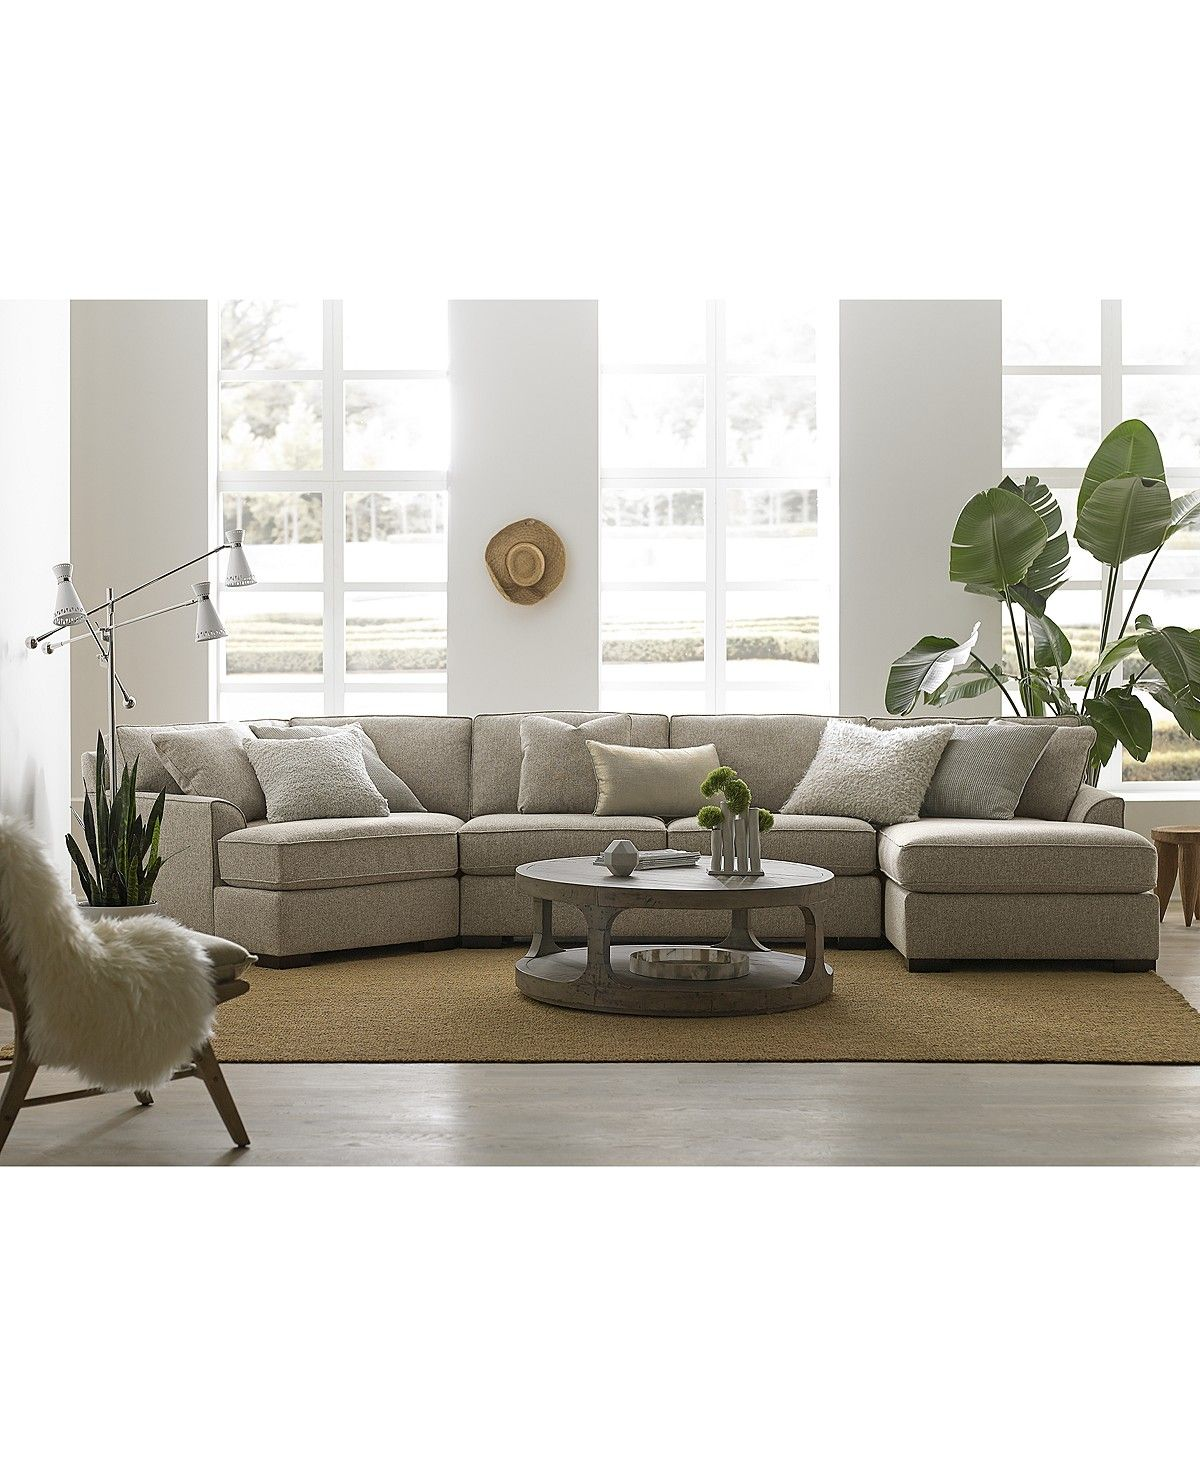 Carena 3 pc fabric sectional with cuddler chaise created for macys sectional sofas furniture macys